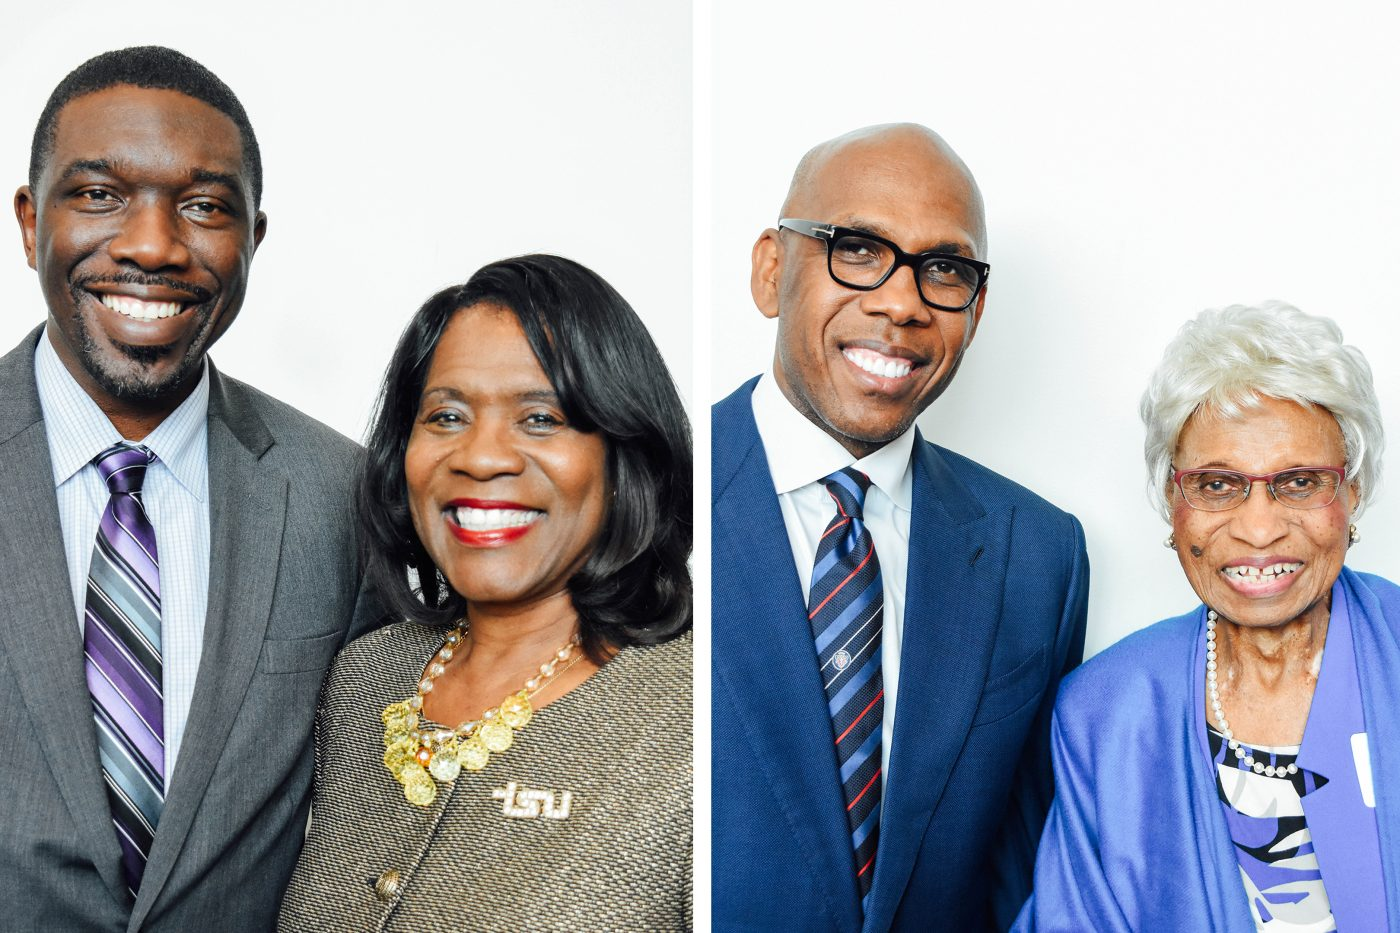 Judge Waverly Crenshaw Jr Honored With Bridge To Equality